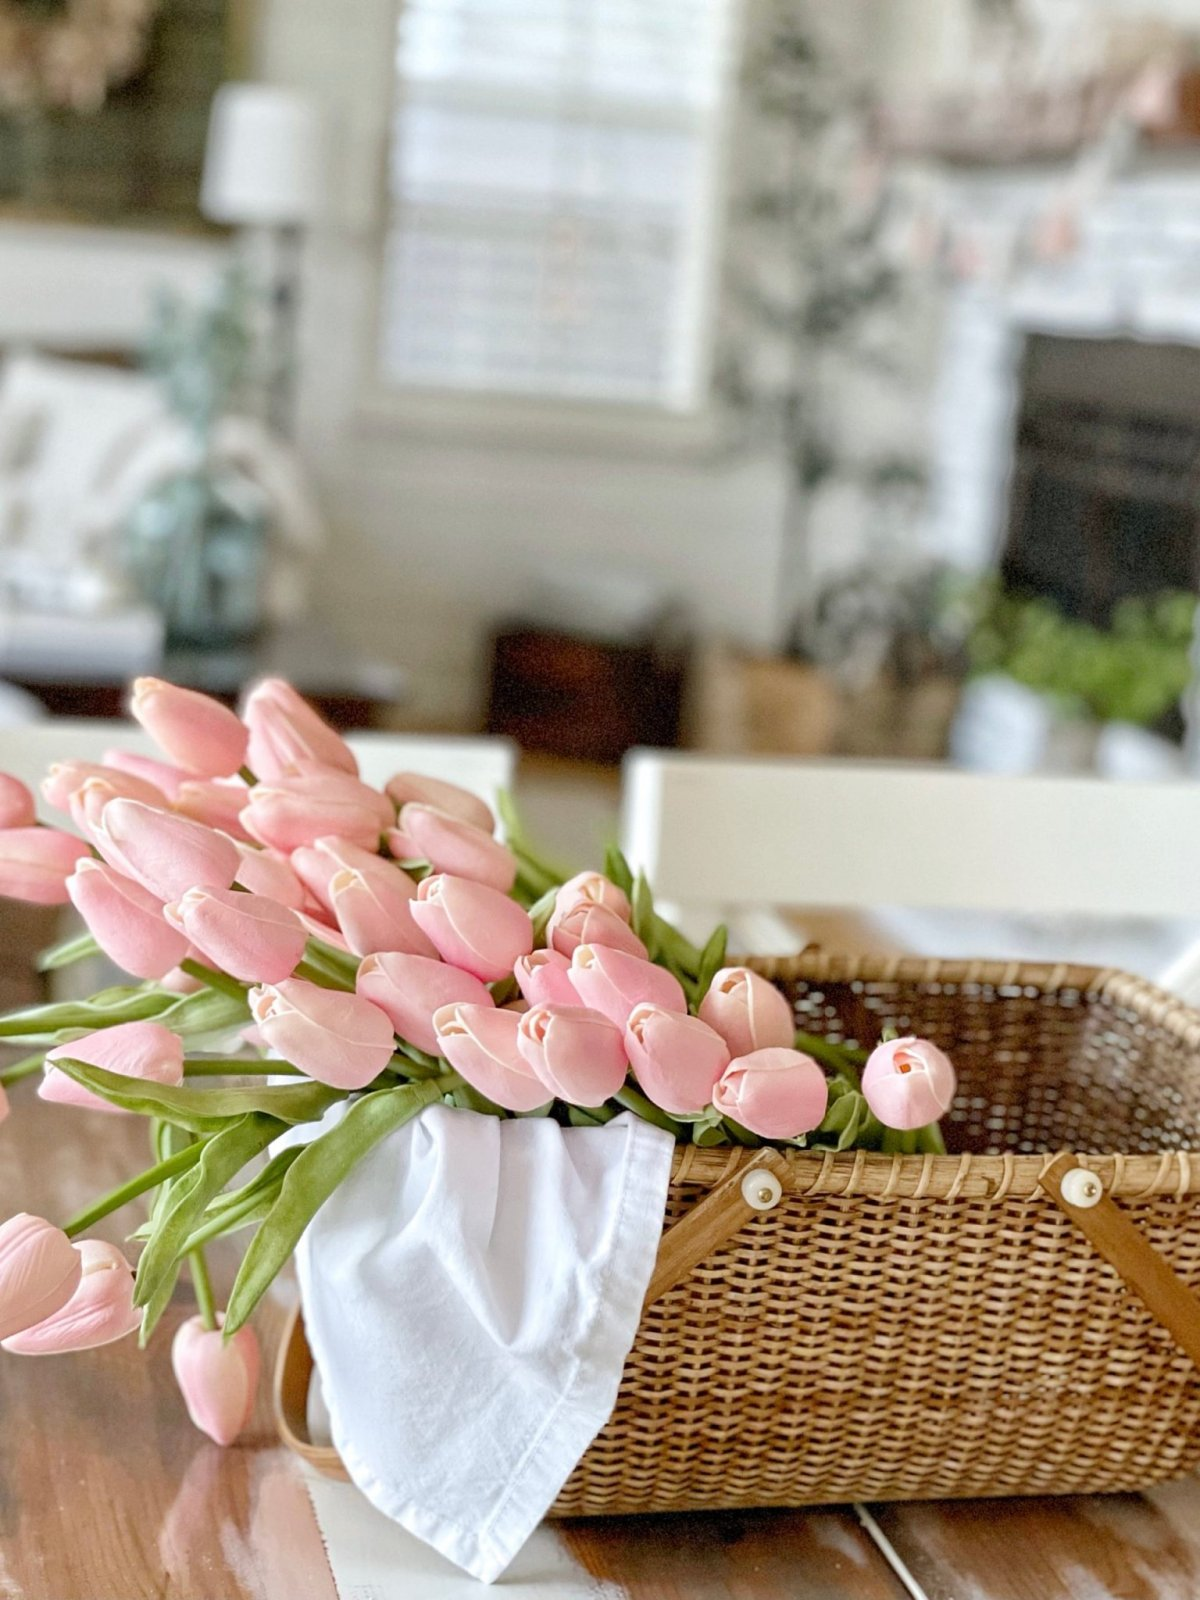 Simple spring decor pink tulips in a basket.